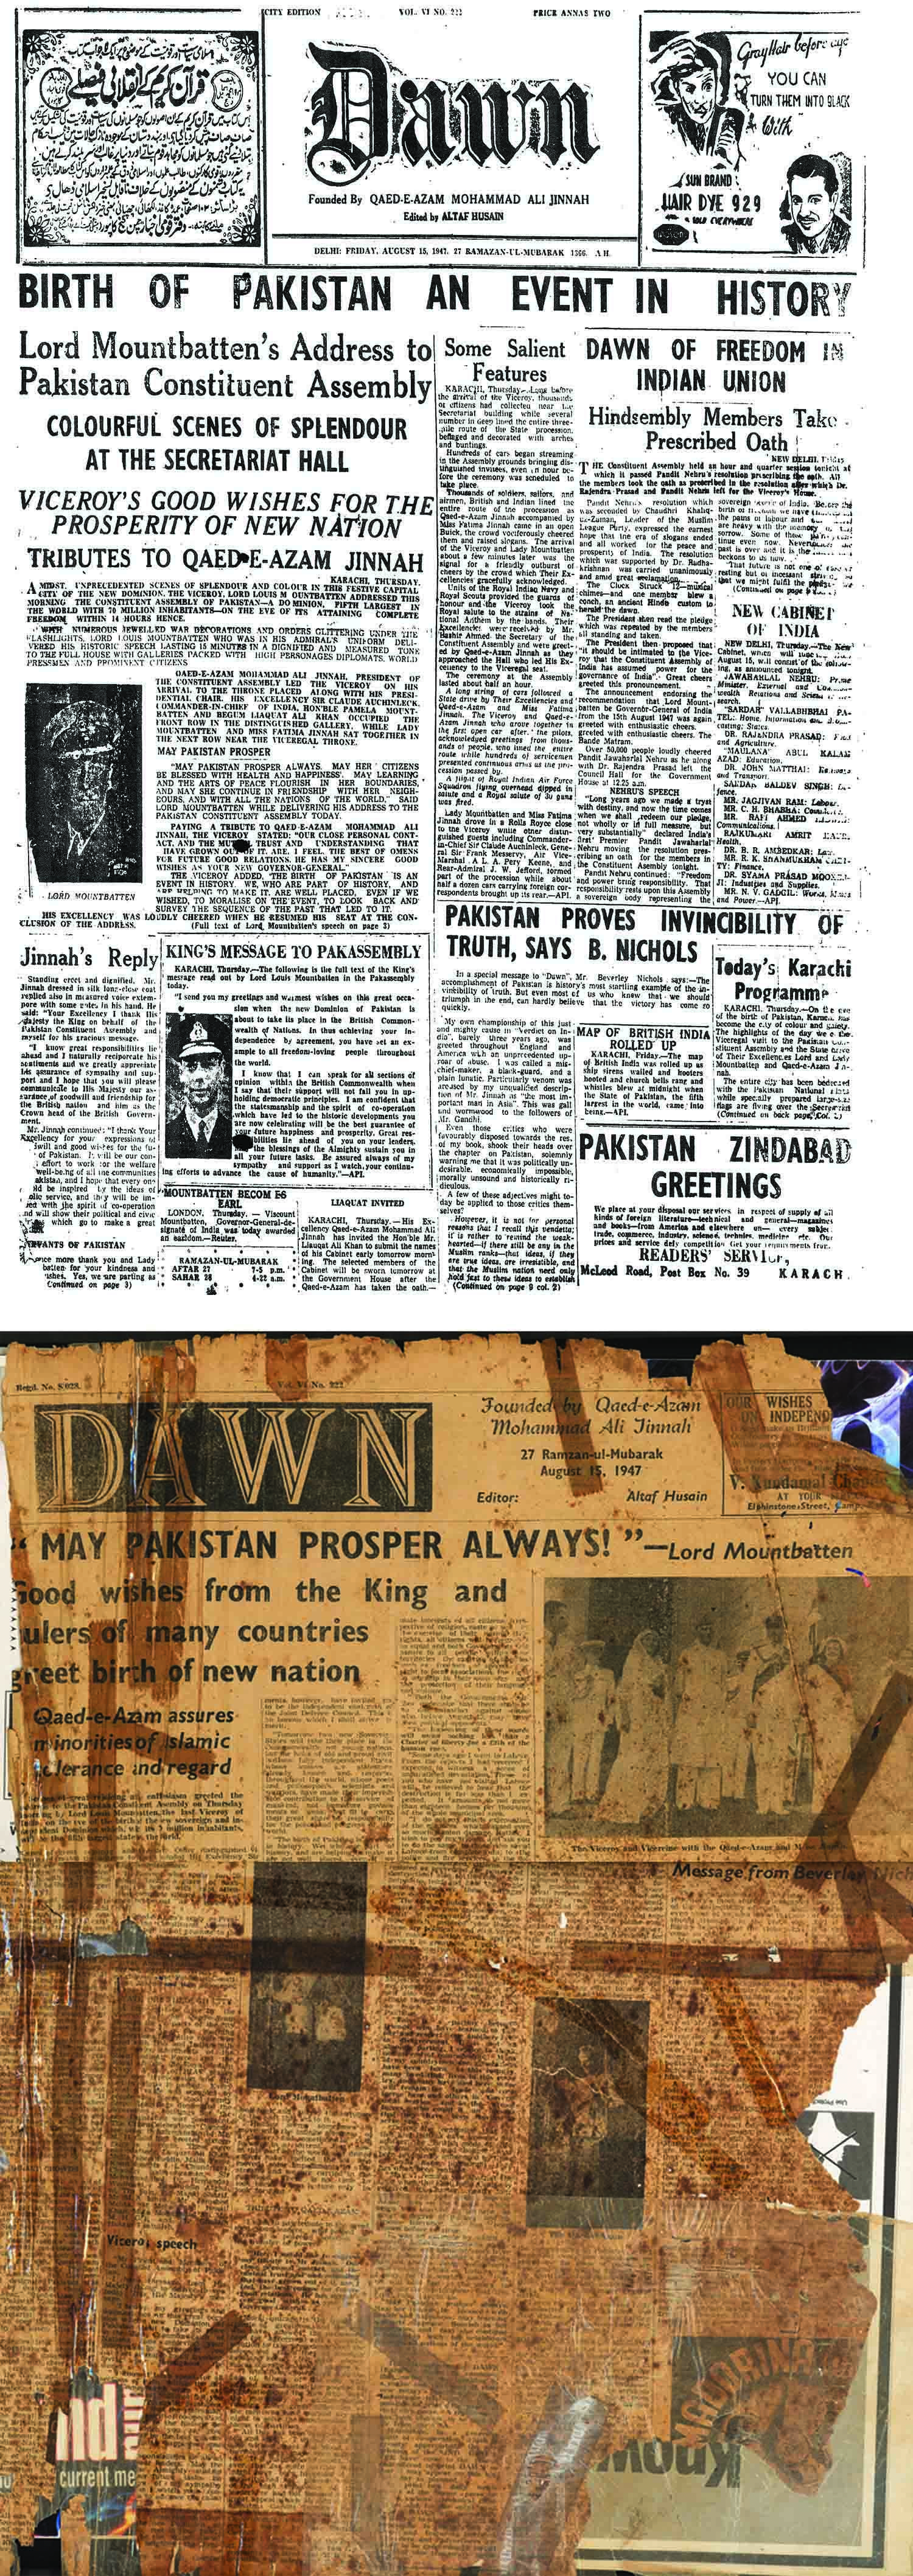 The only inter-dominion Pakistan-Indian daily newspaper, Dawn had its editions coming out of Karachi (right) and Delhi (left). However, it lasted hardly a month as the Hindu mob burnt down its offices in Delhi, angered by the 'Pakistan Zindabad' headline that can be seen at bottom-right of the Delhi edition.